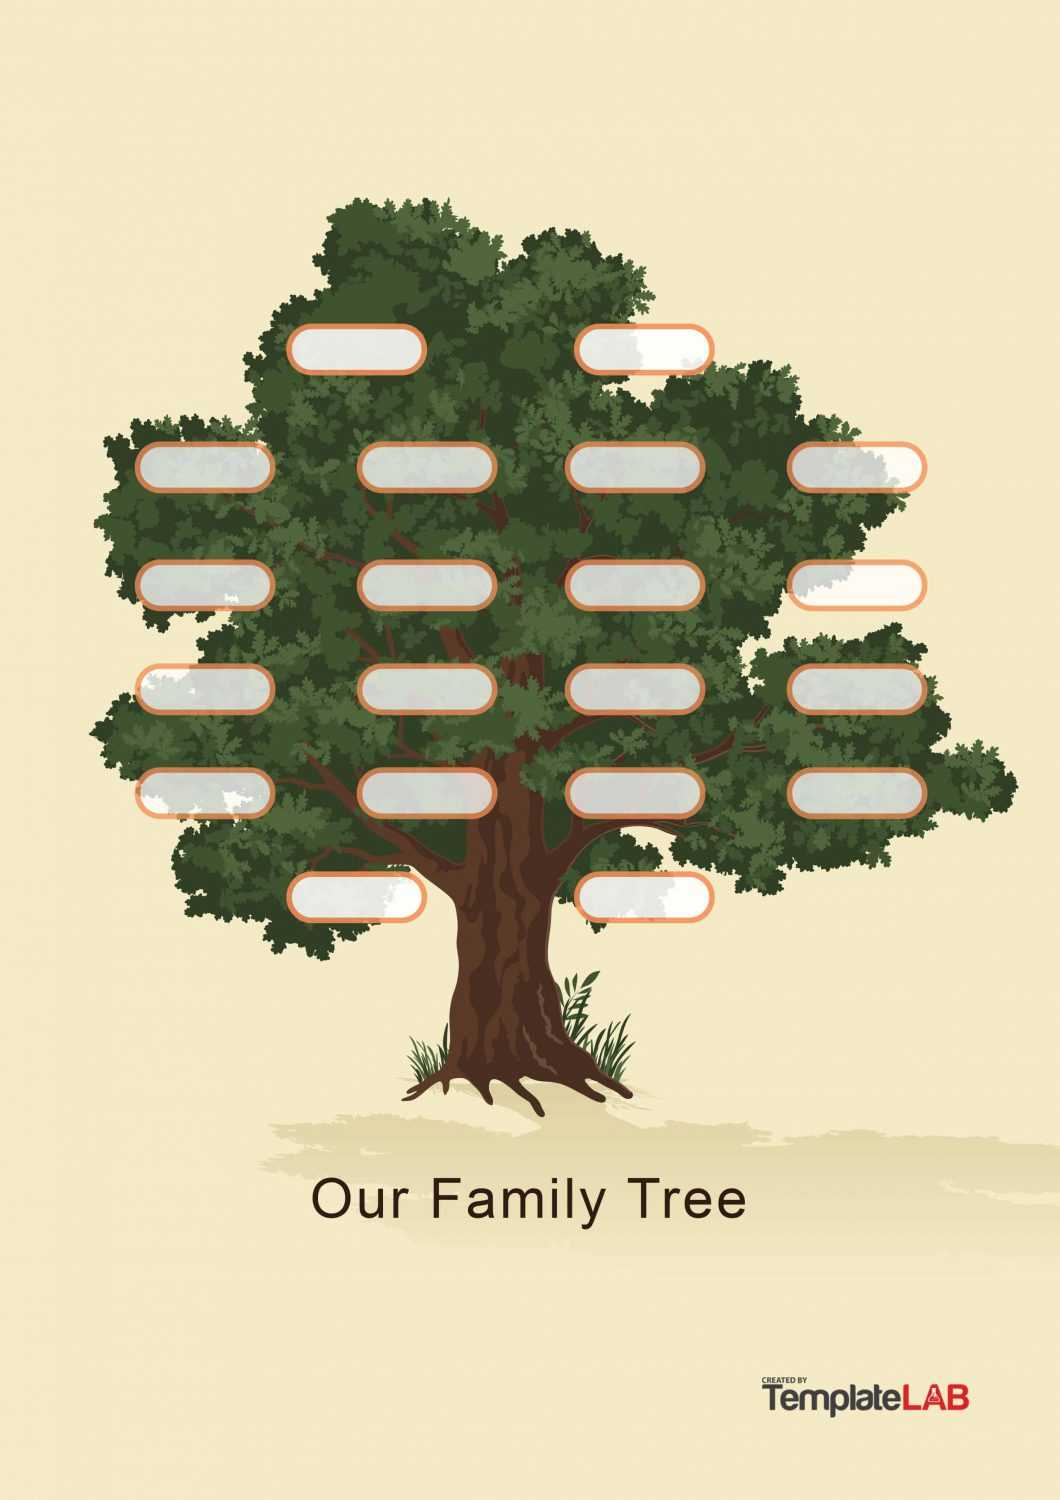 41+ Free Family Tree Templates (Word, Excel, Pdf) ᐅ Templatelab With 3 Generation Family Tree Template Word